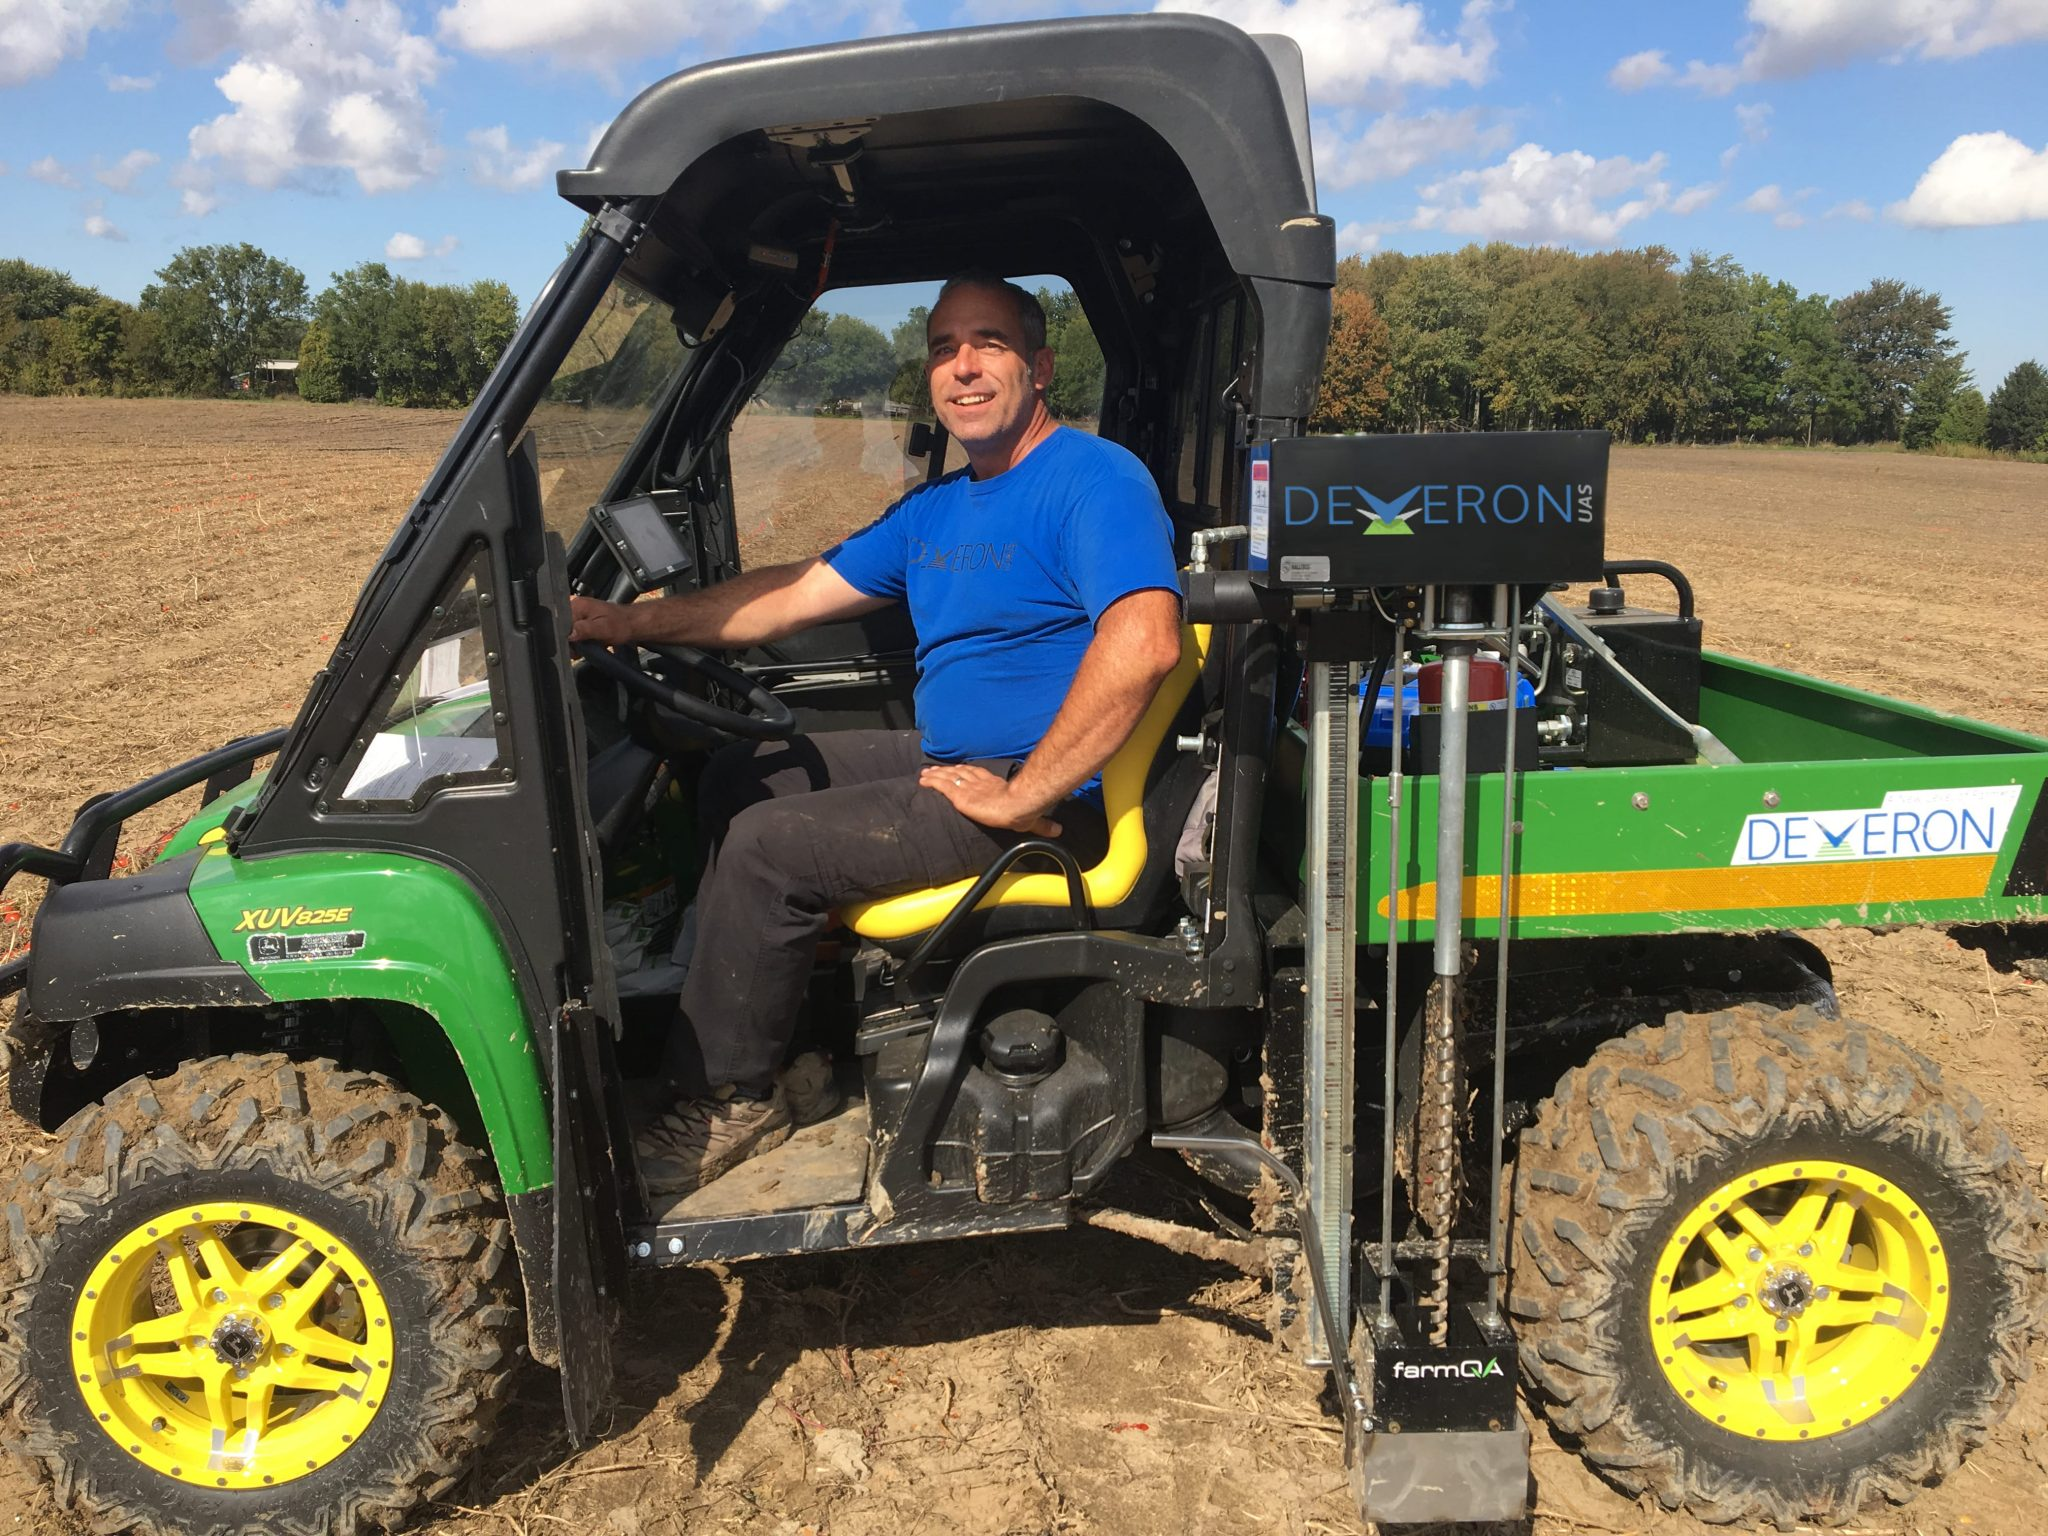 Steve Laevens prepares to go out in the field for soil sampling with the ATV setup.